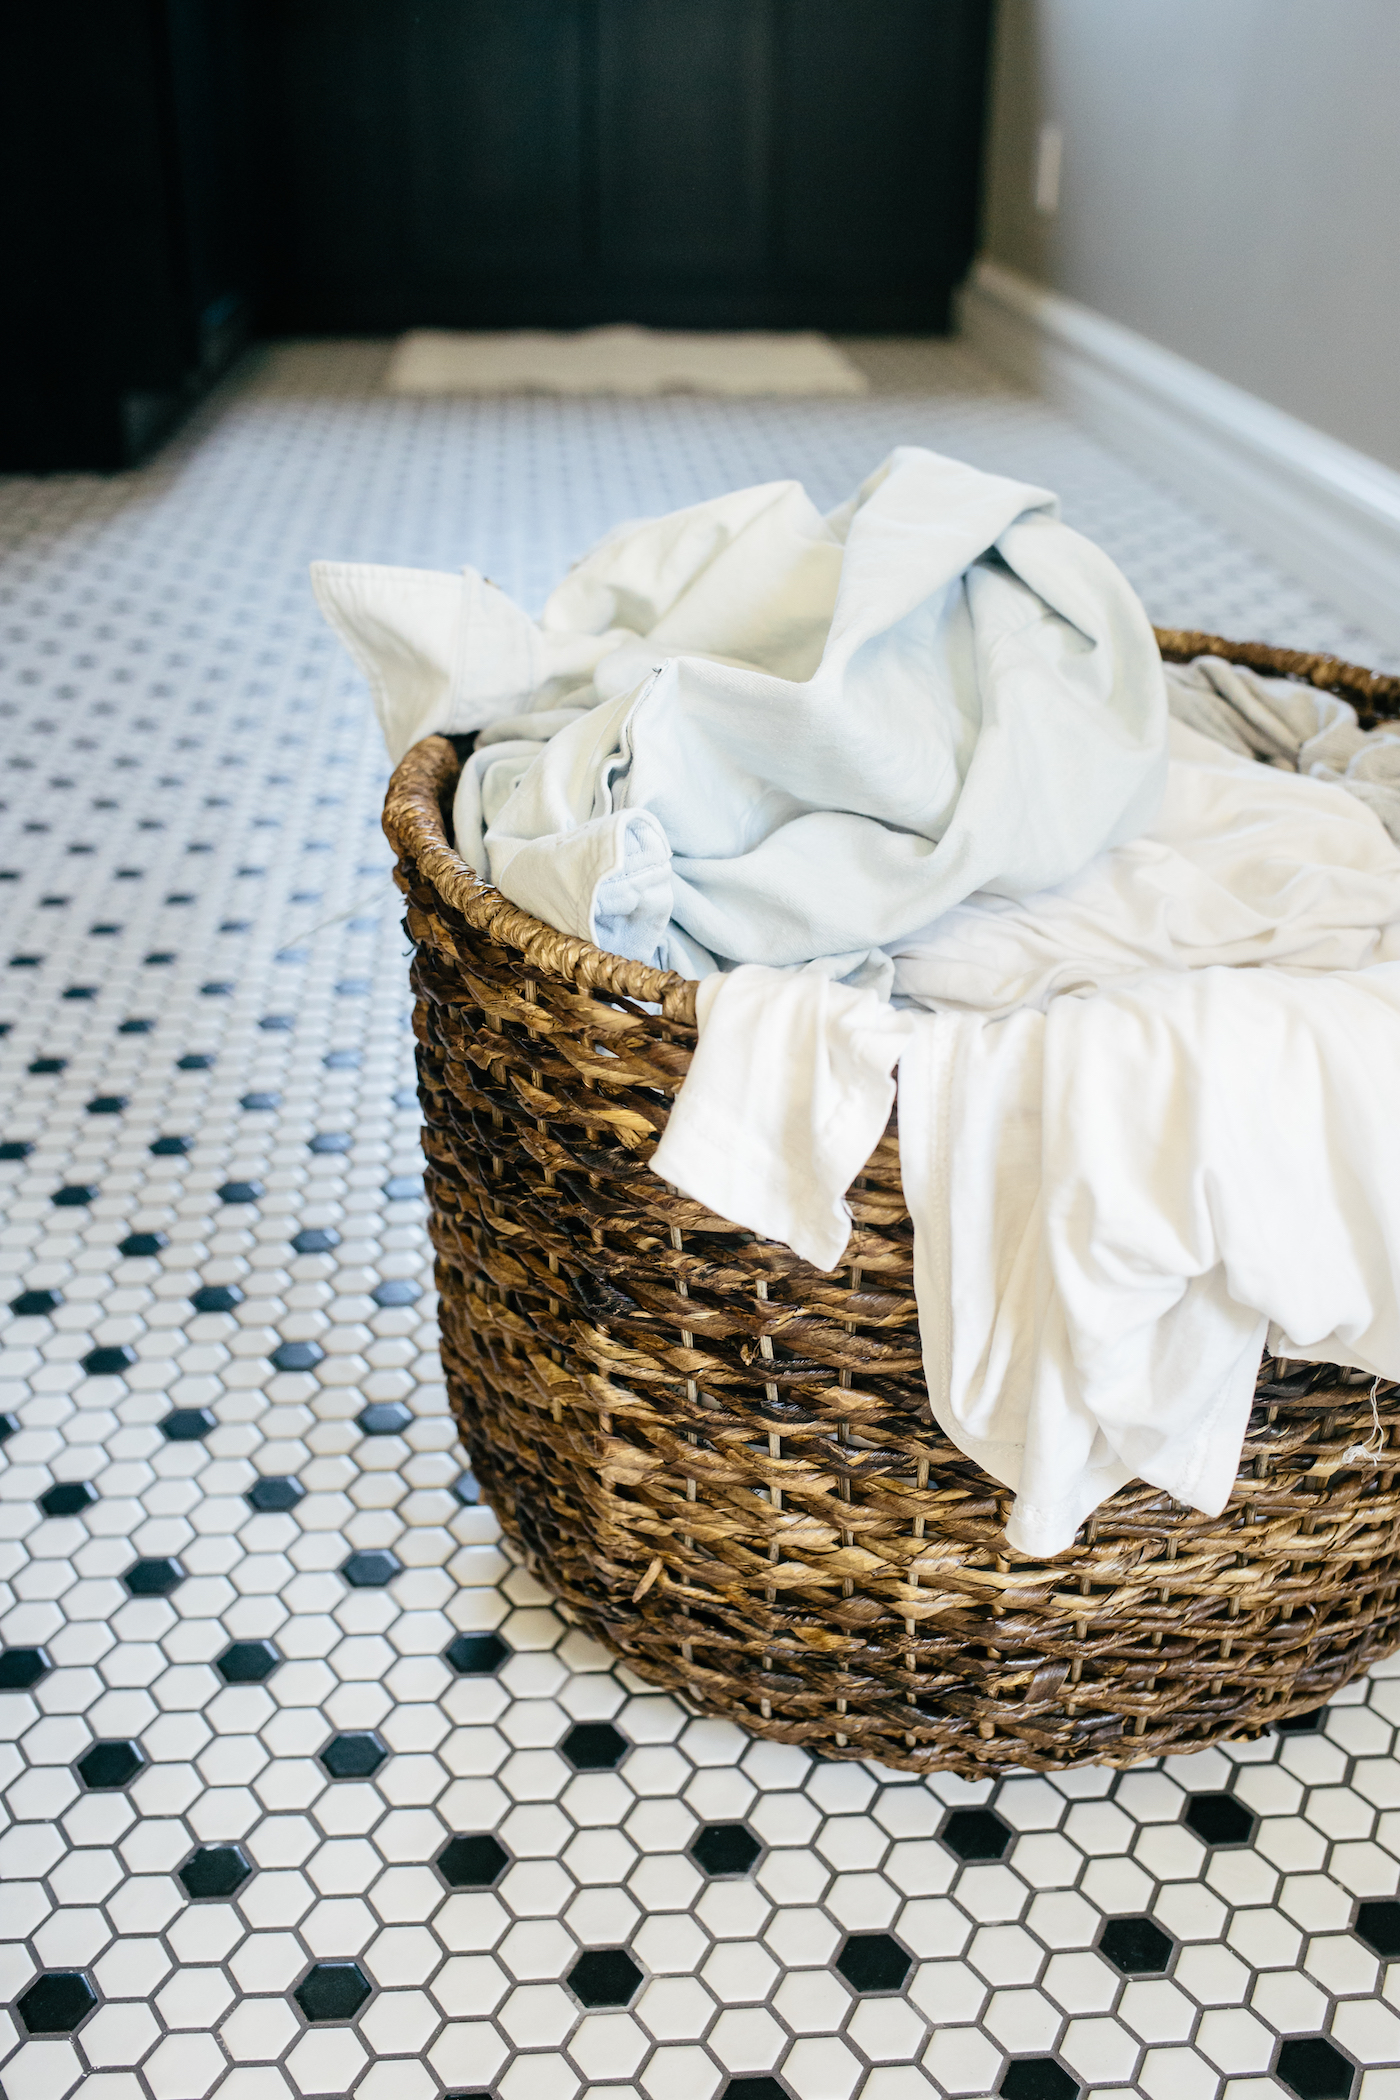 5 Ways to Lessen Your Housework